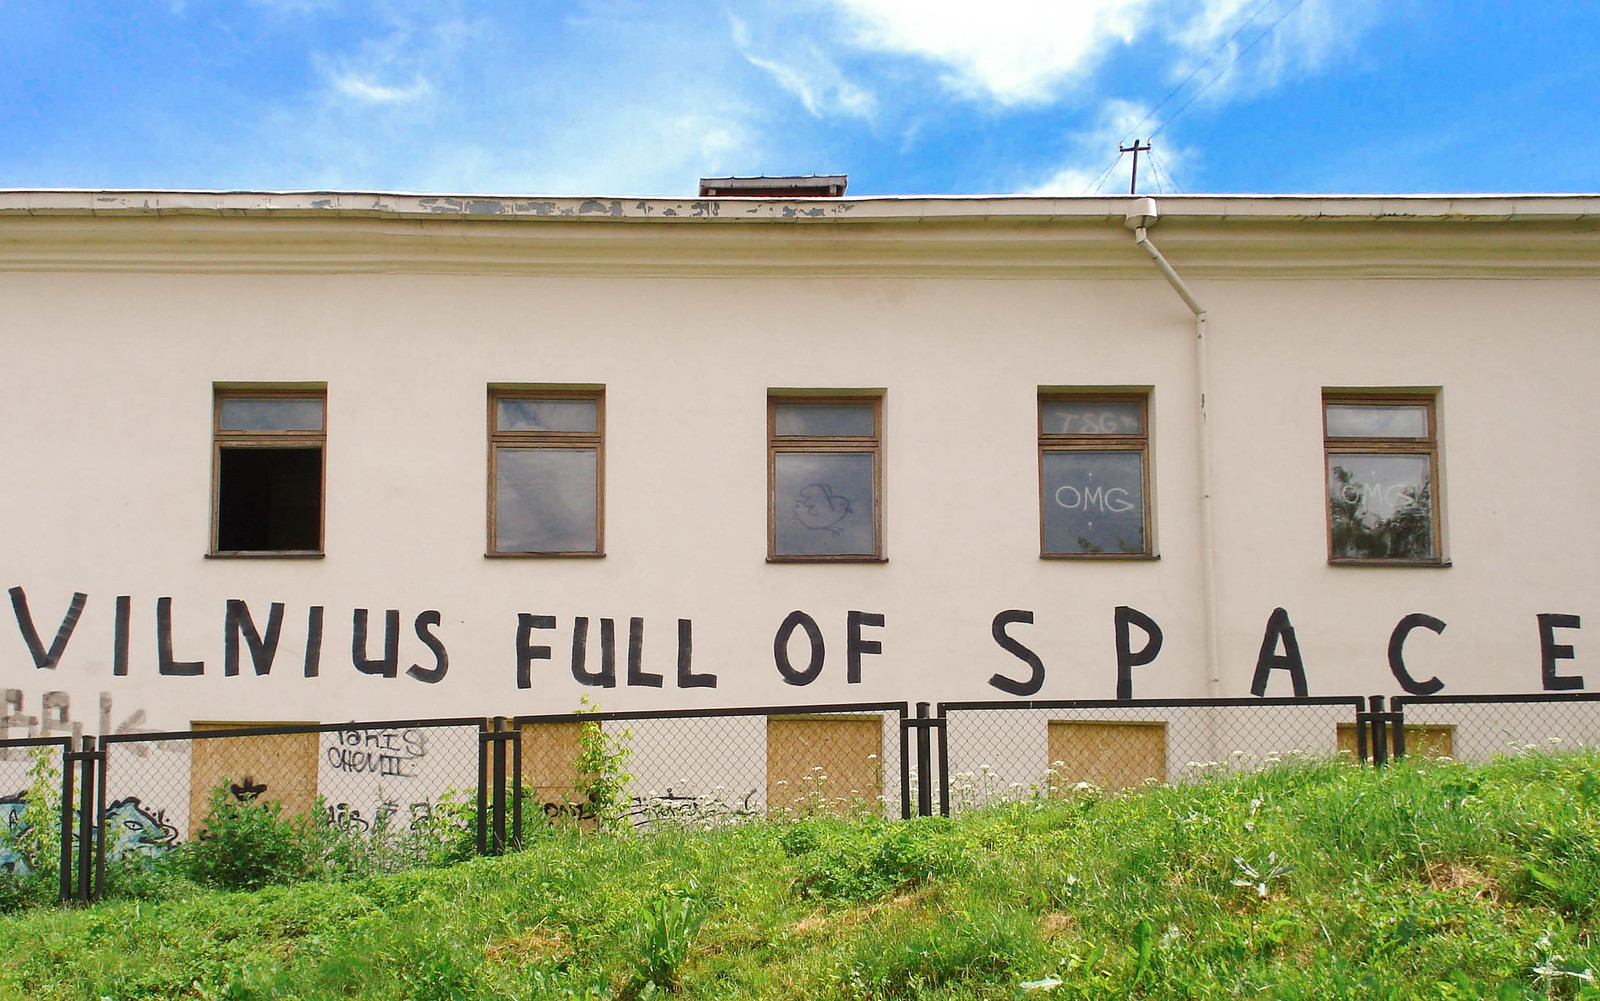 Vilnius Full of Space